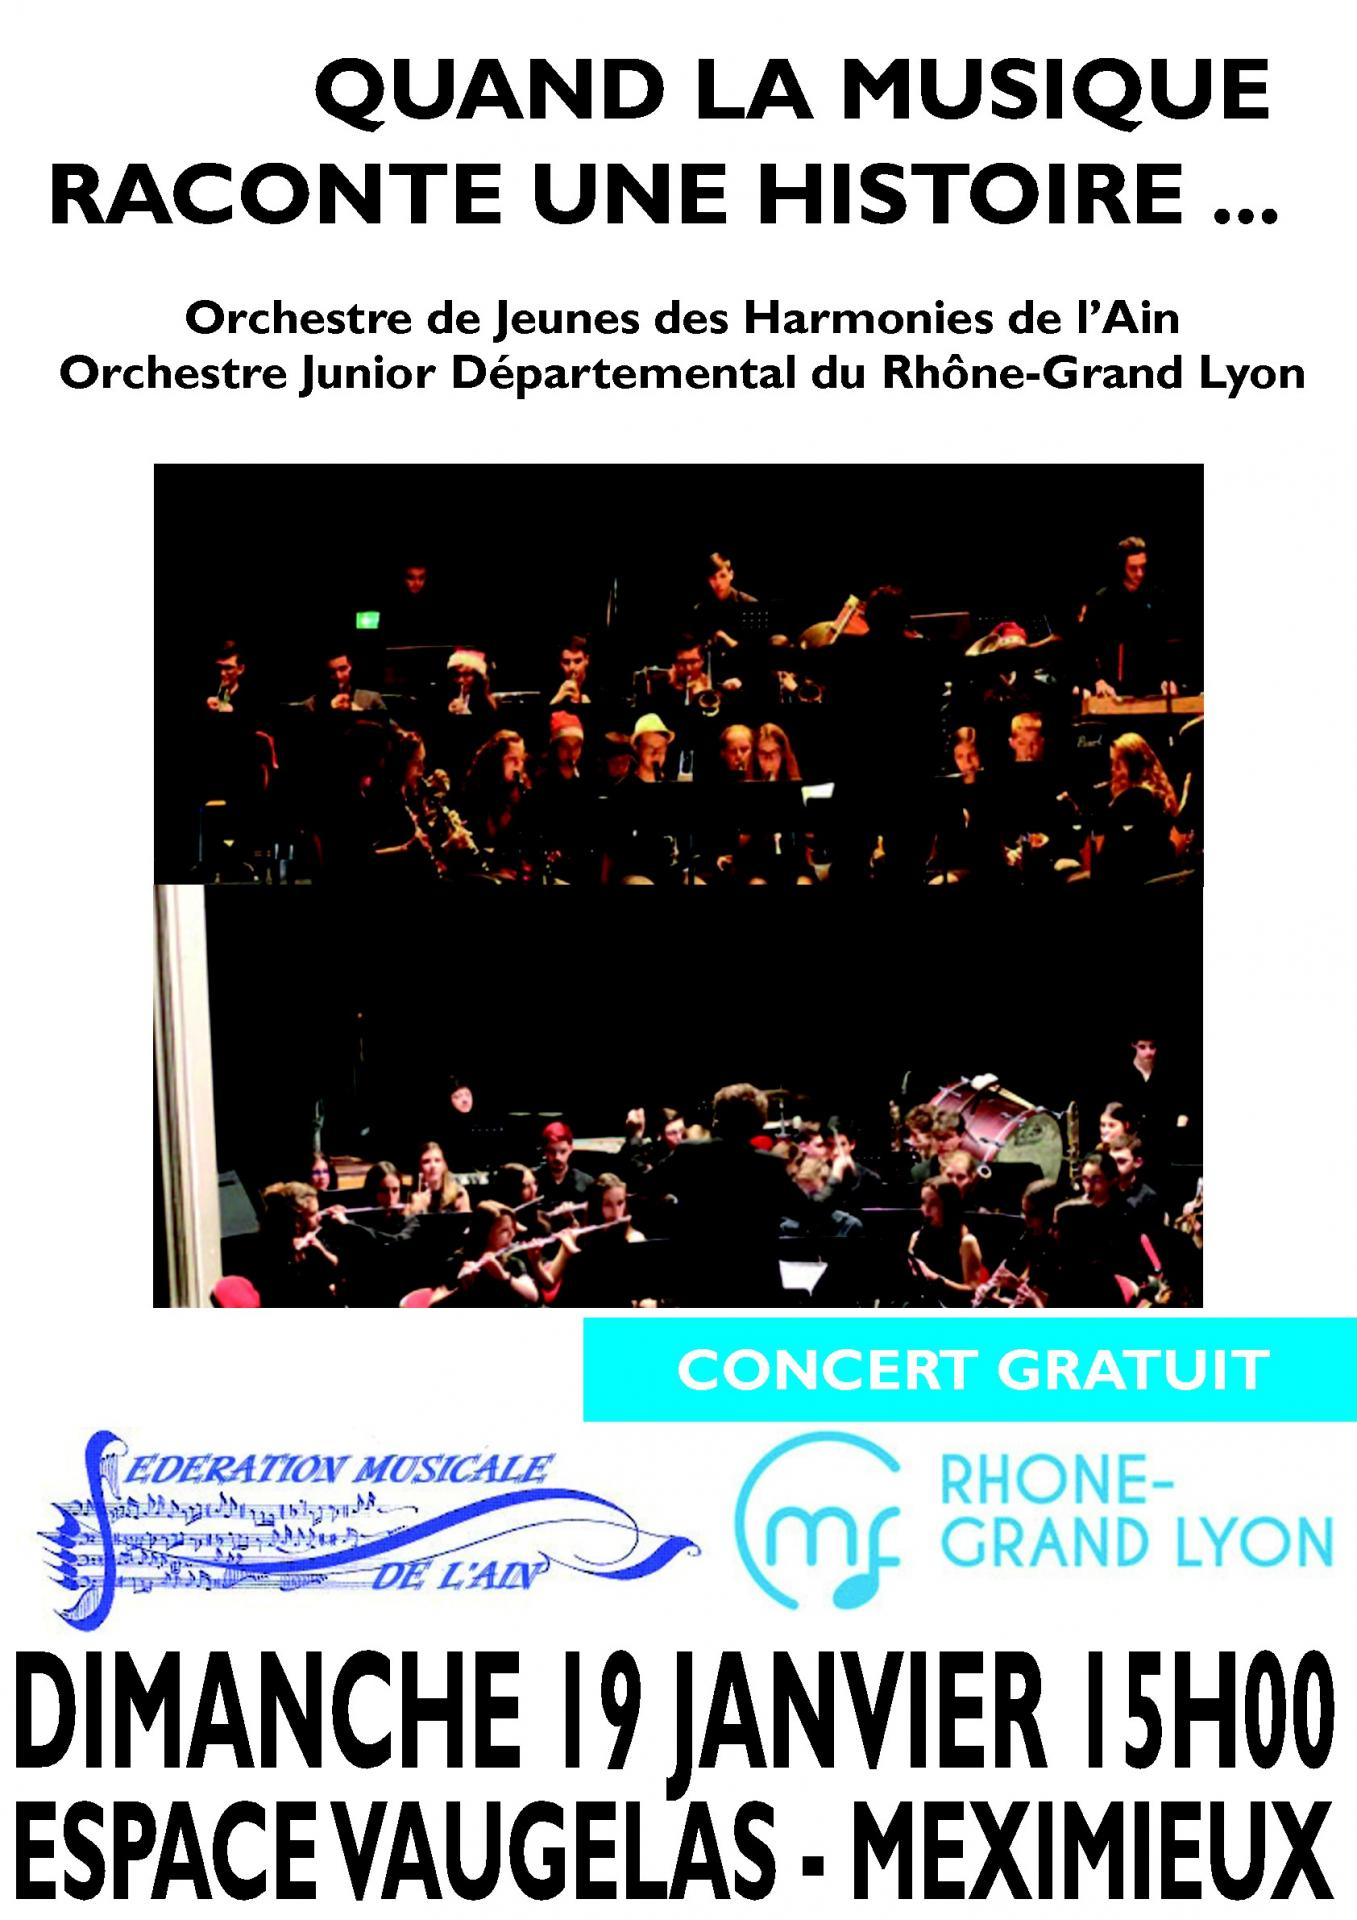 Concert ojha ojd rhone grand ly on 19 01 20 001 001